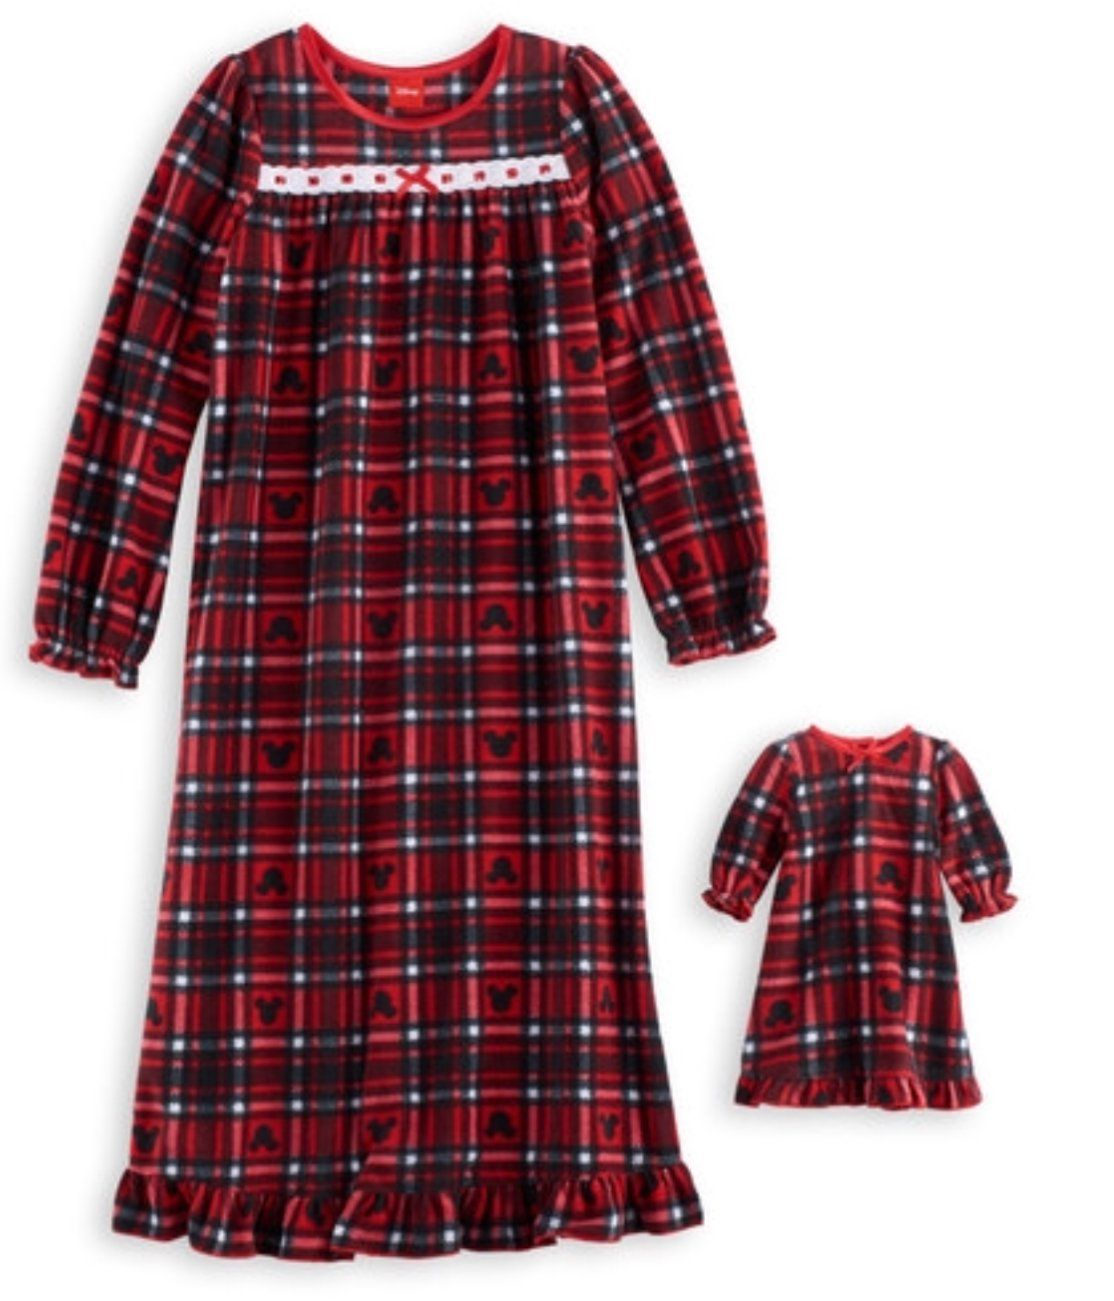 Disney Minnie Mouse Girls Gown /& Matching Doll Gown Set Red Plaid Size 2T  Xmas